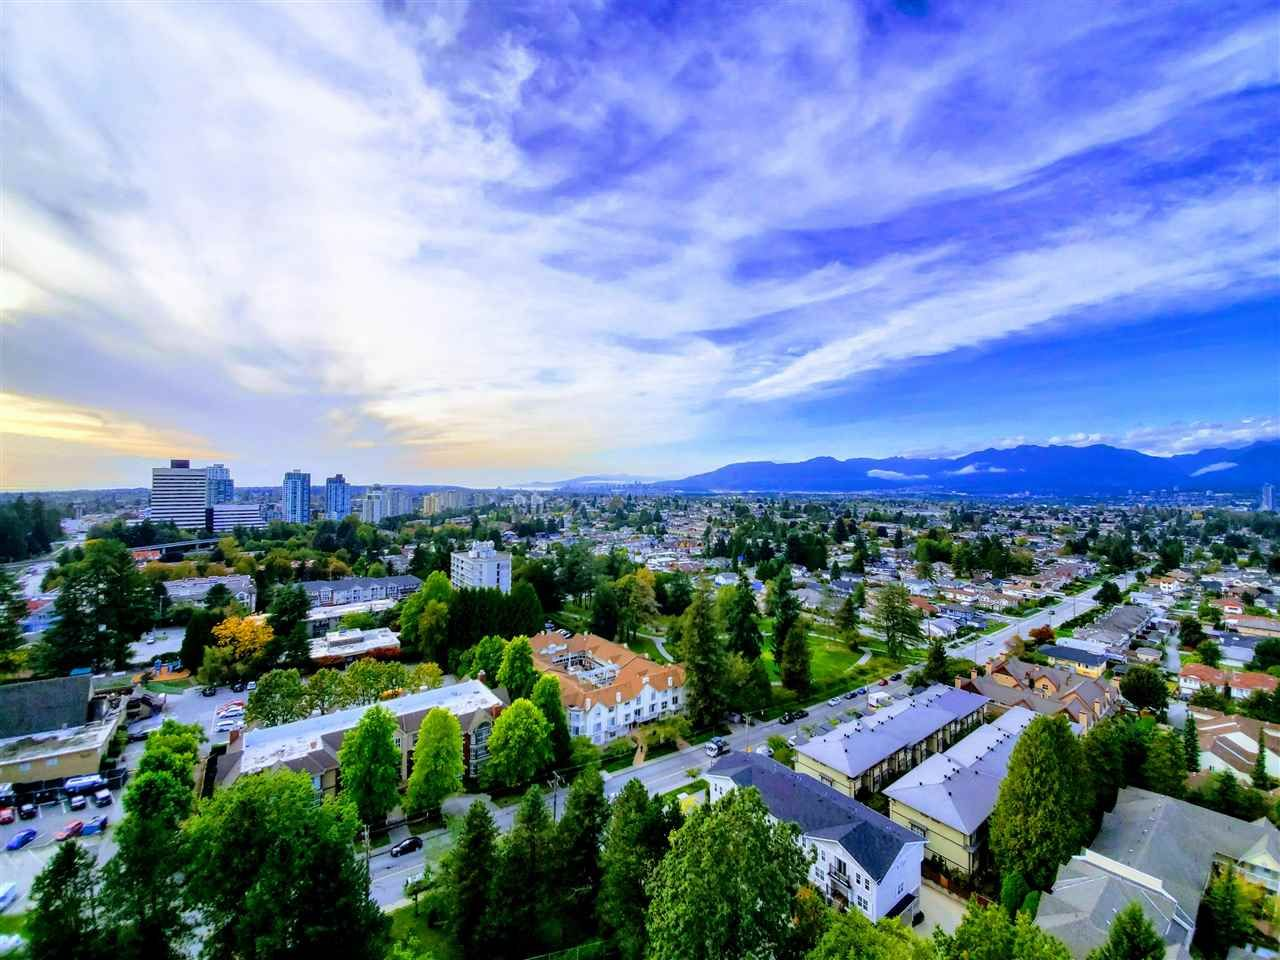 """Main Photo: 2102 4160 SARDIS Street in Burnaby: Central Park BS Condo for sale in """"CENTRAL PARK PLACE"""" (Burnaby South)  : MLS®# R2409253"""